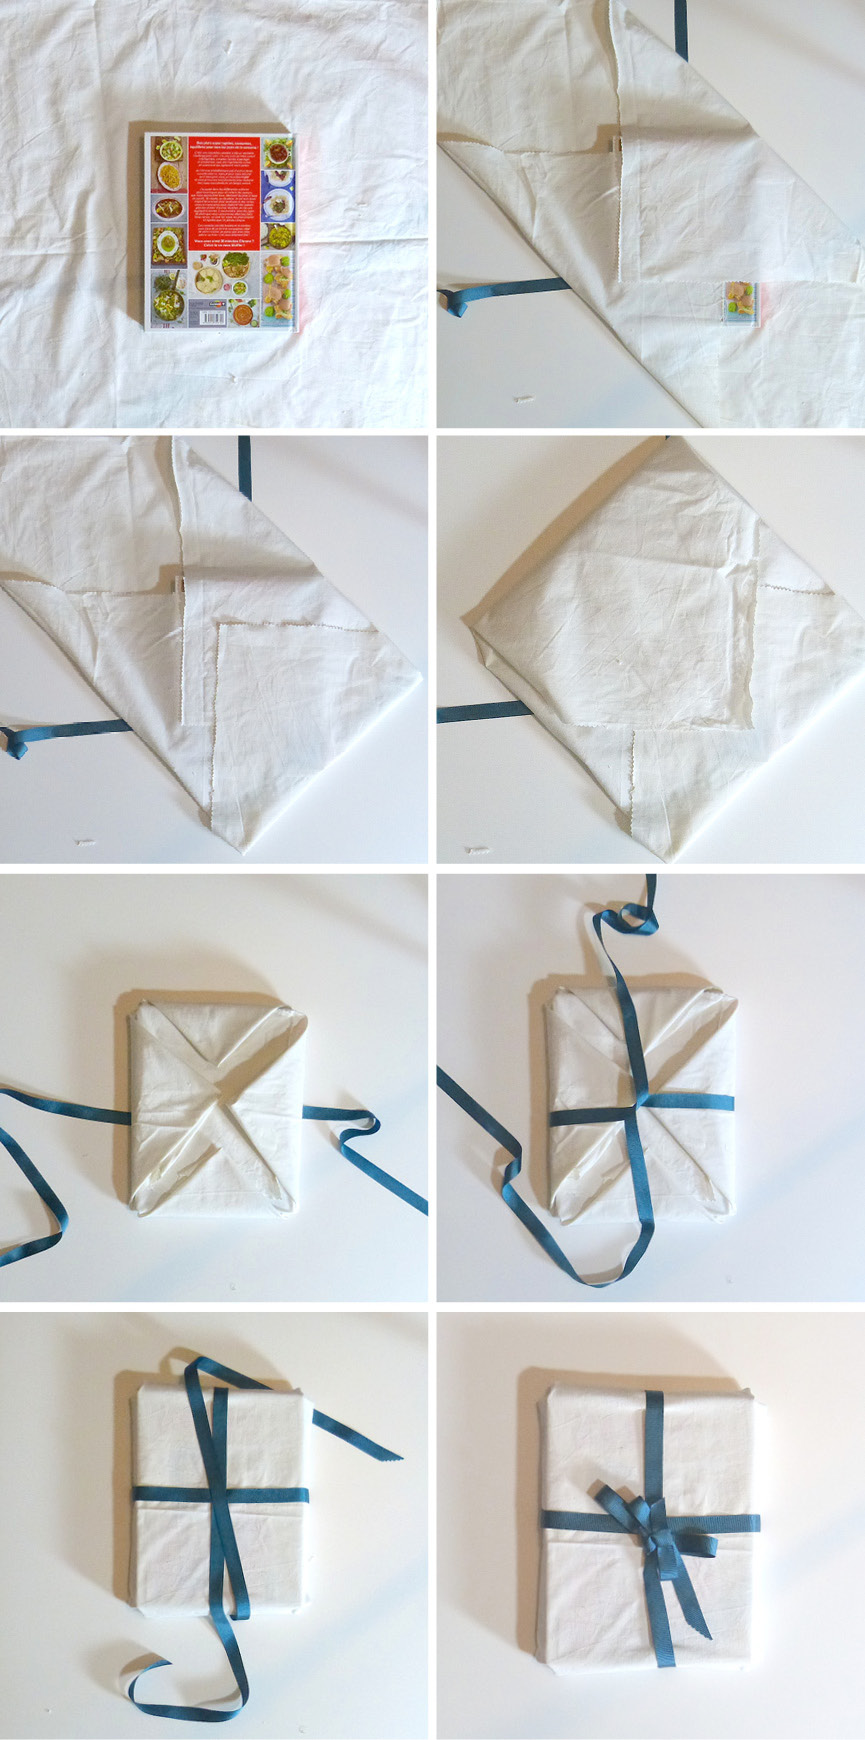 Furoshiki wrapping techniques